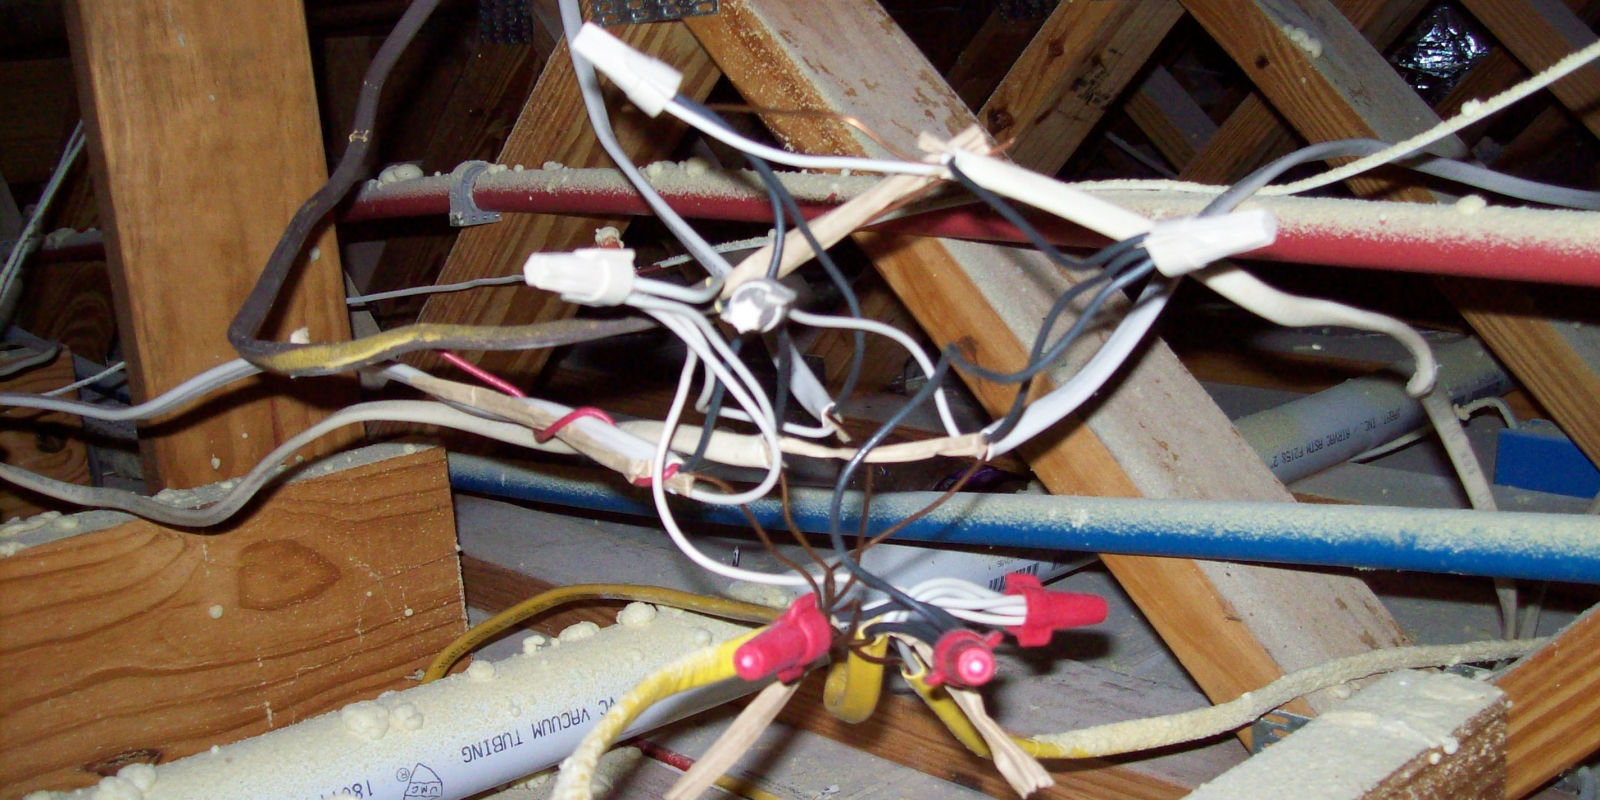 7 Building Code Violations You Should Definitely Avoid